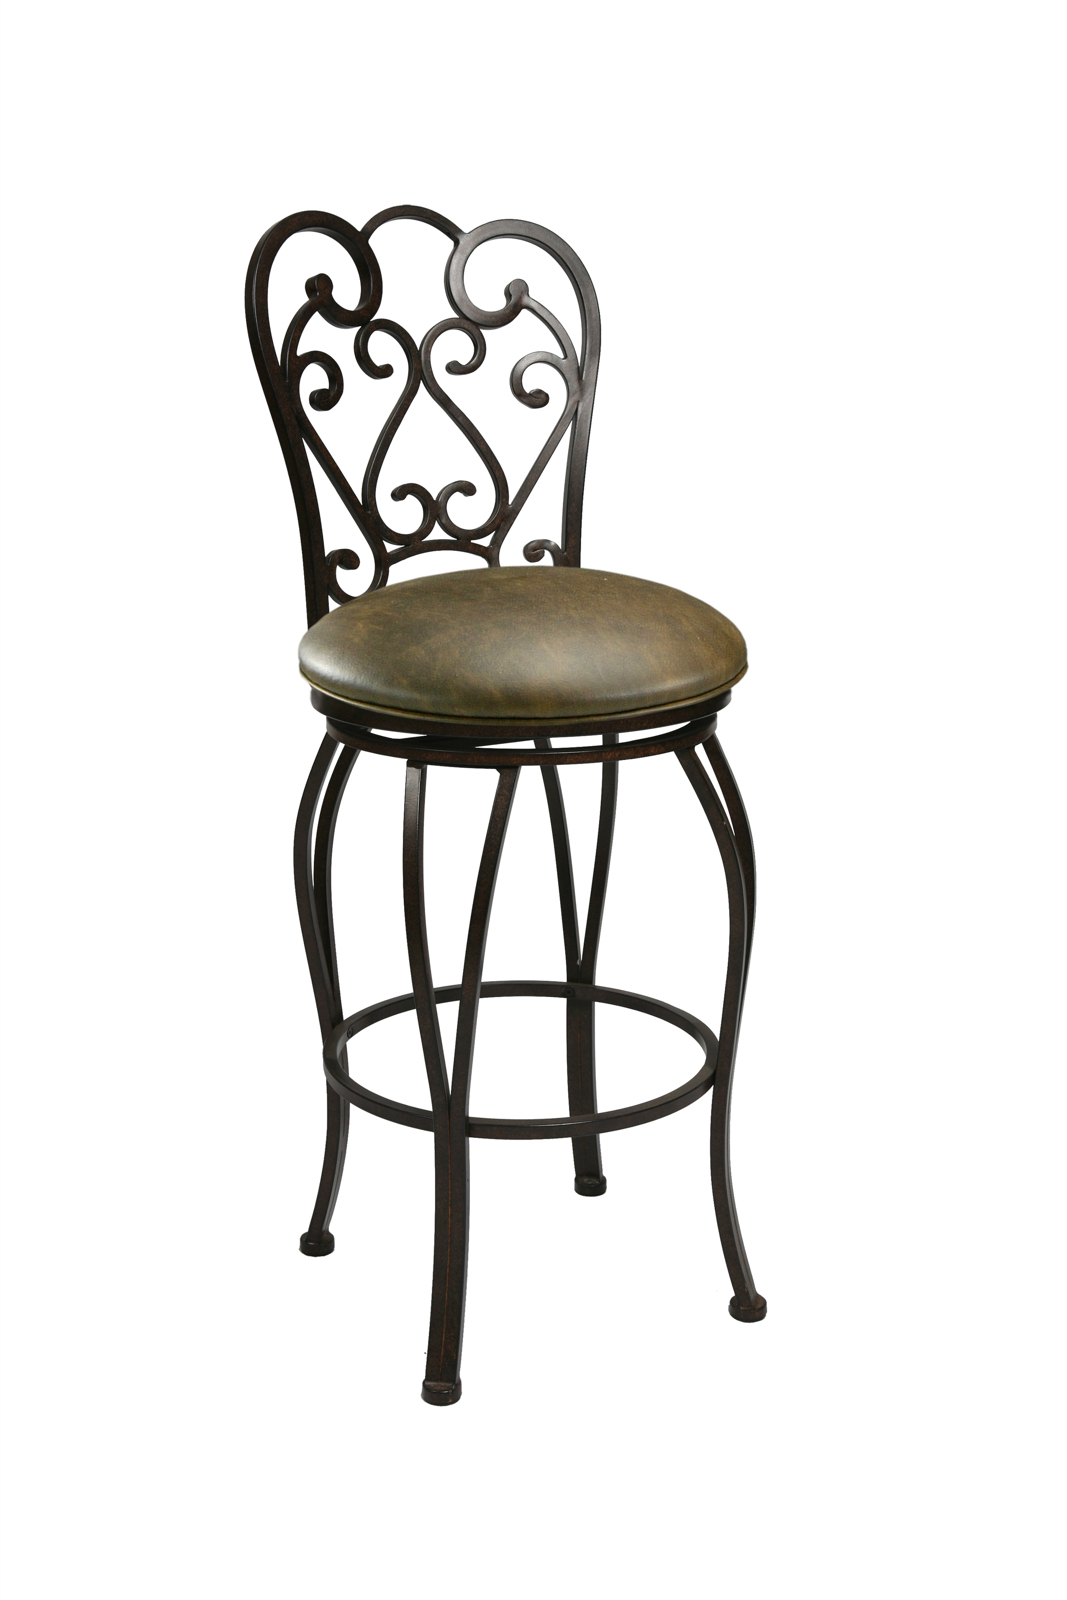 Pastel Furniture Magnolia Swivel Barstool In Autumn Rust Set Of 2 Ma 222 30 Ar 649 By Dining